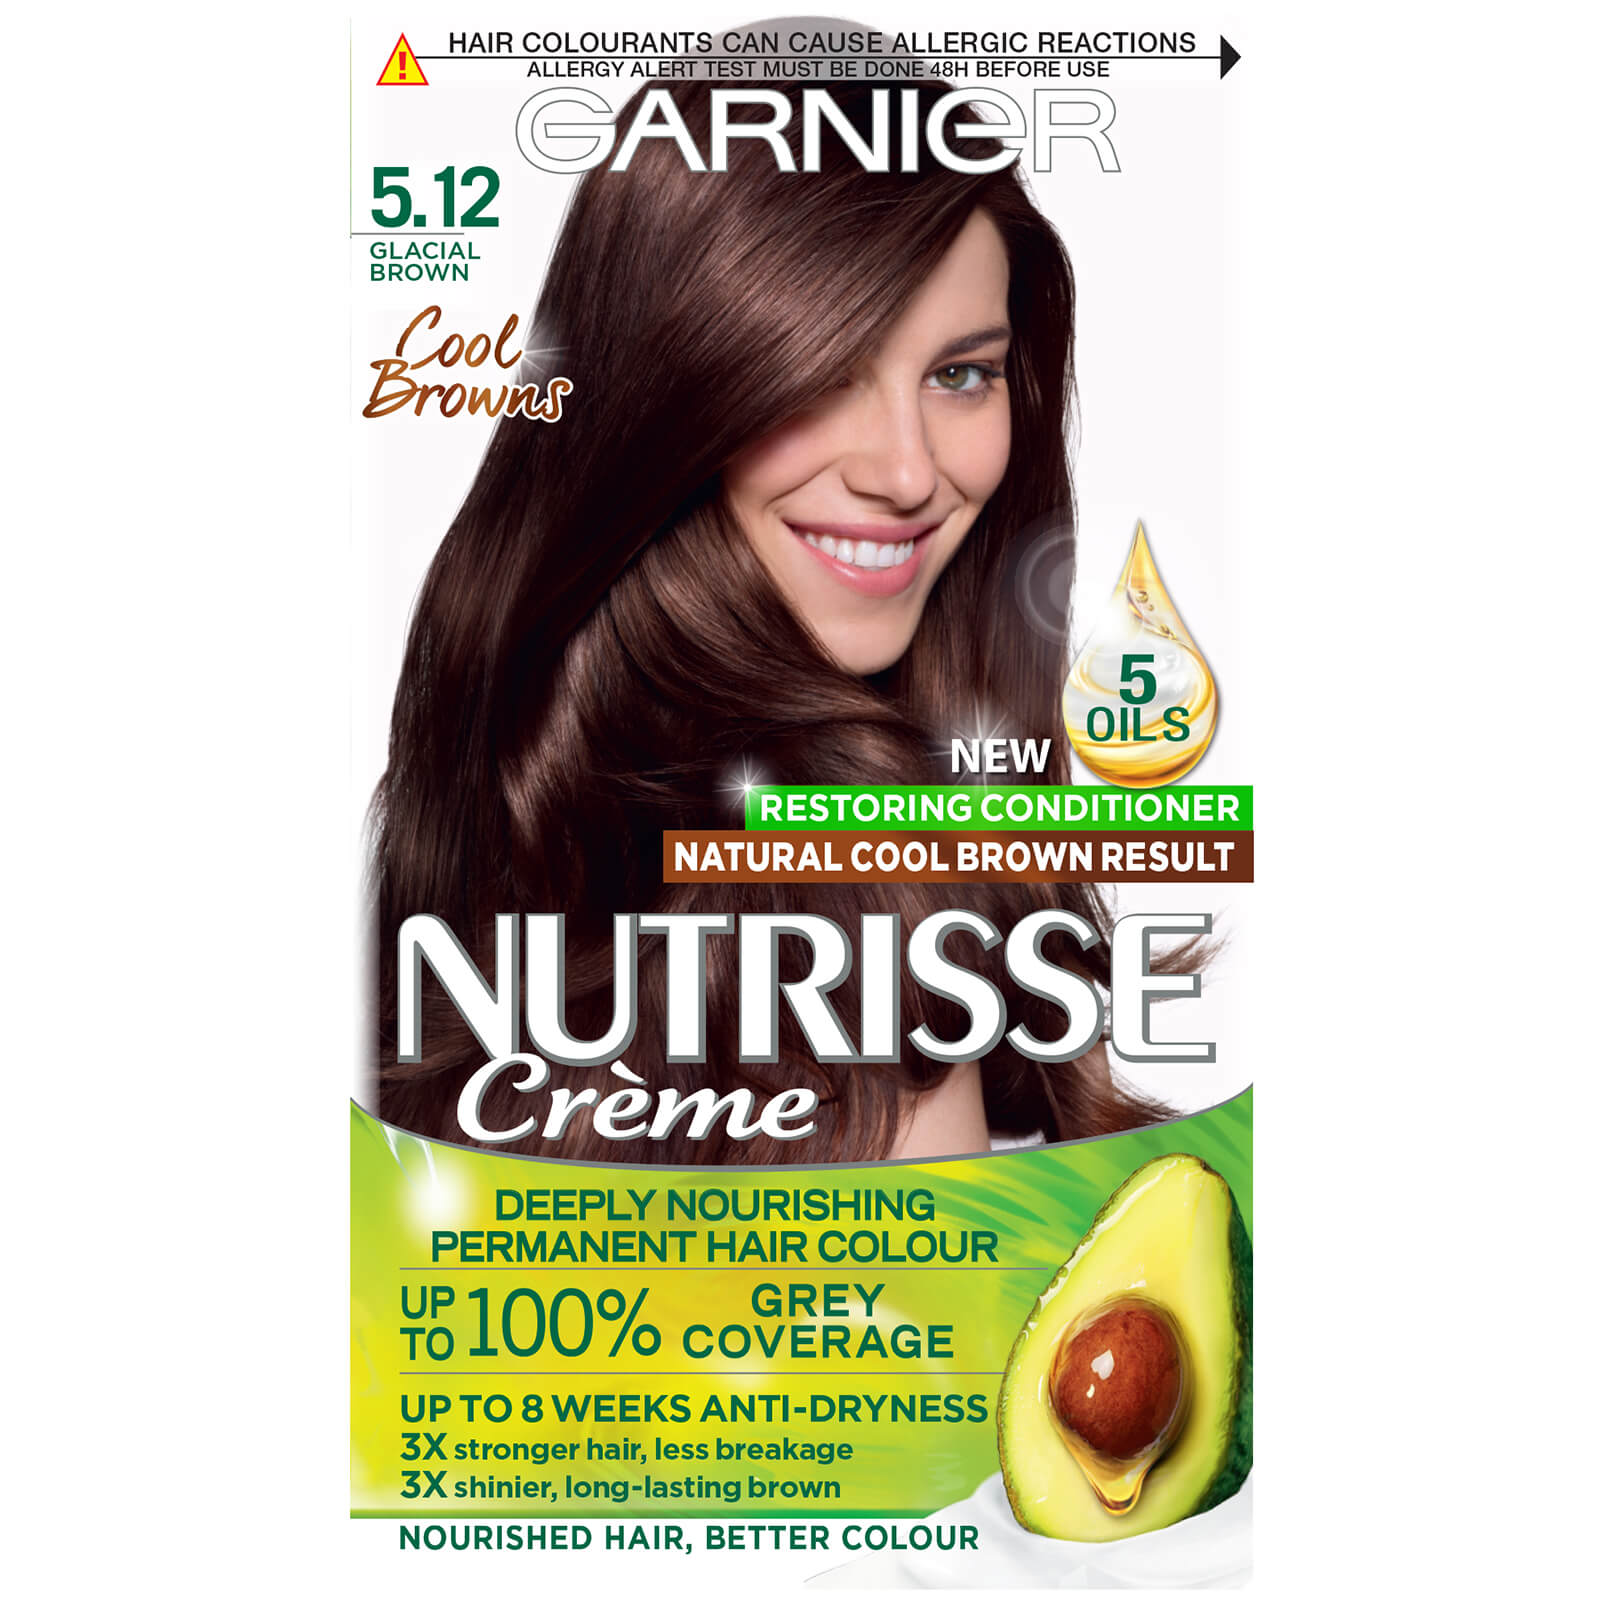 Garnier Nutrisse Permanent Hair Dye (Various Shades) - 5.12 Glacial Brown